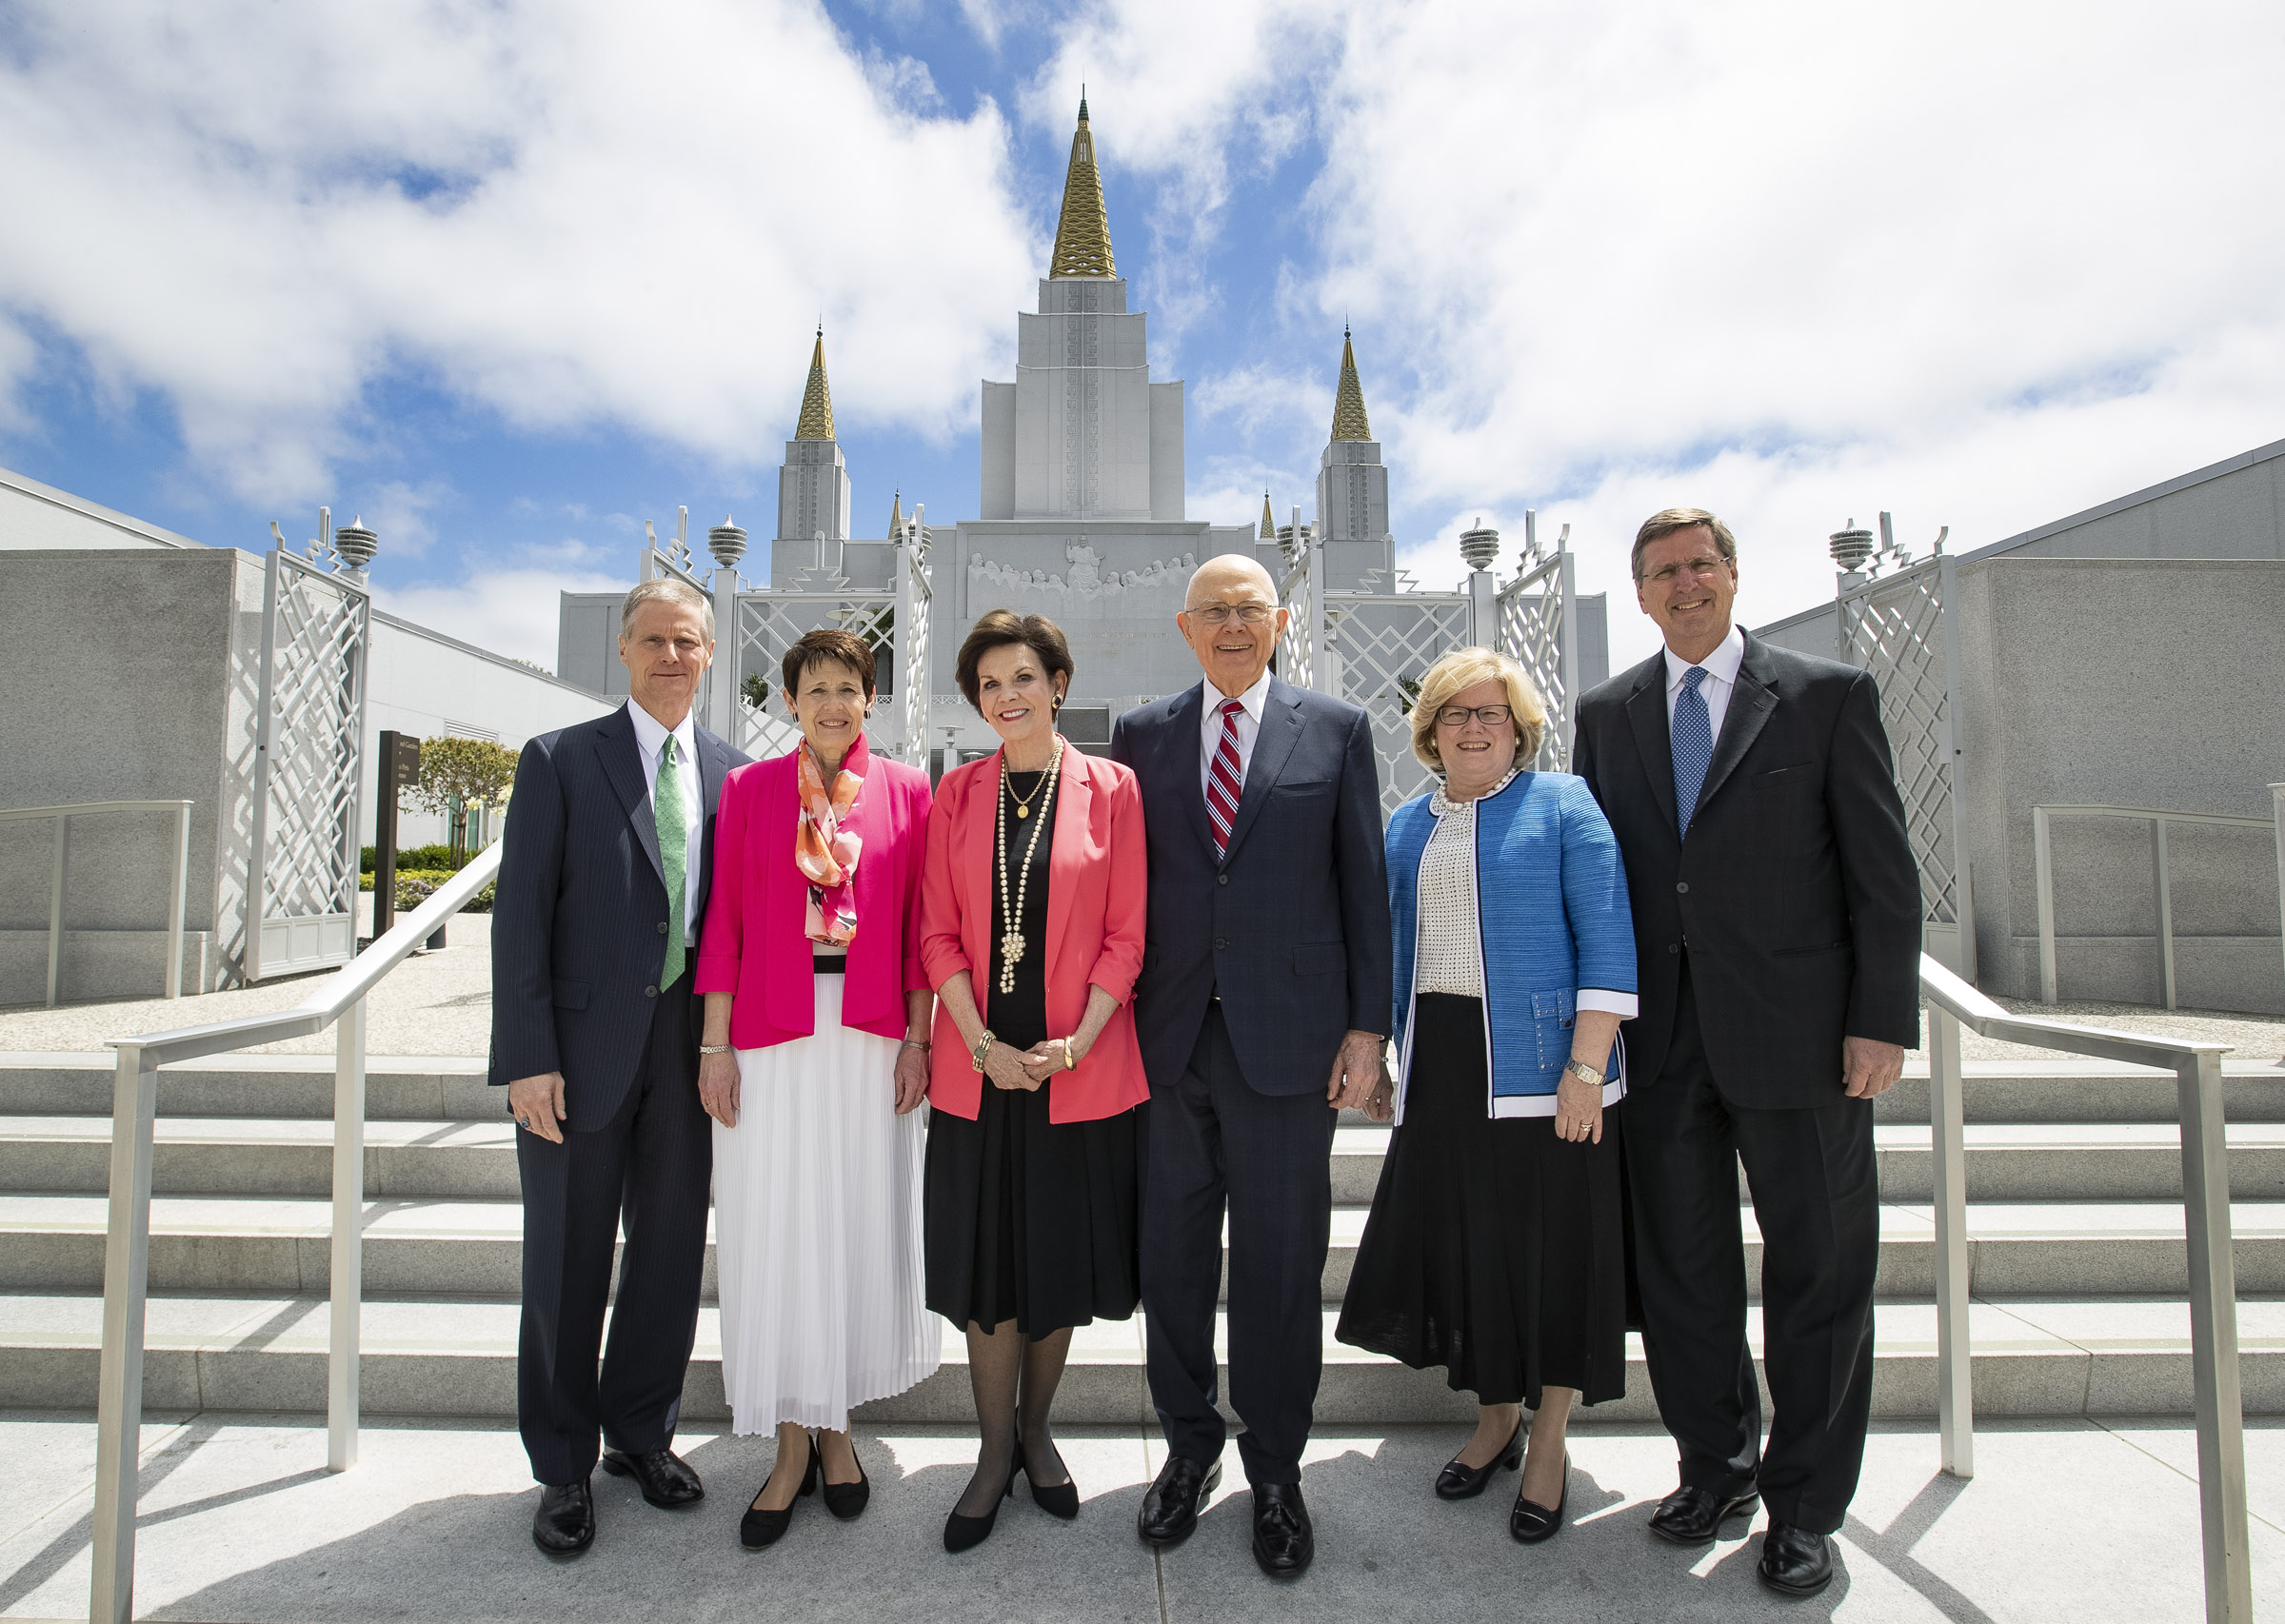 Elder David A. Bednar of the Quorum of the Twelve Apostles and his wife, Sister Susan Bednar, President Dallin H. Oaks, first counselor in the First Presidency, and his wife, Sister Kristen Oaks, center, and Elder Kevin W. Pearson, a General Authority Seventy and president of the California Area, and his wife, Sister June Pearson outside the Oakland California Temple on Saturday, June 15, 2019.